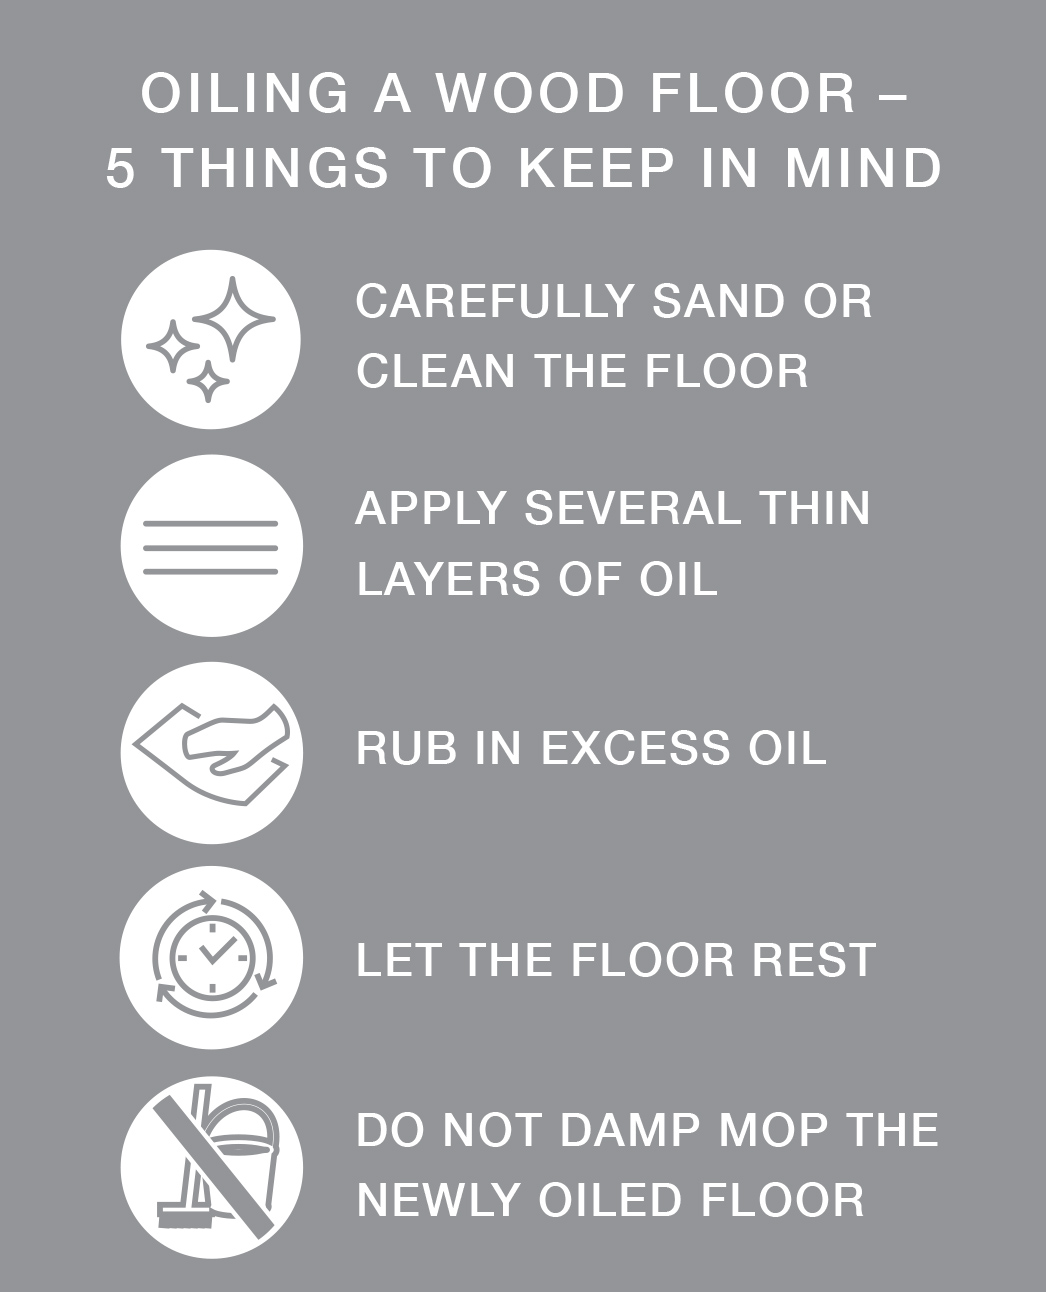 pergo-infographic-oiling-a-wood-floor